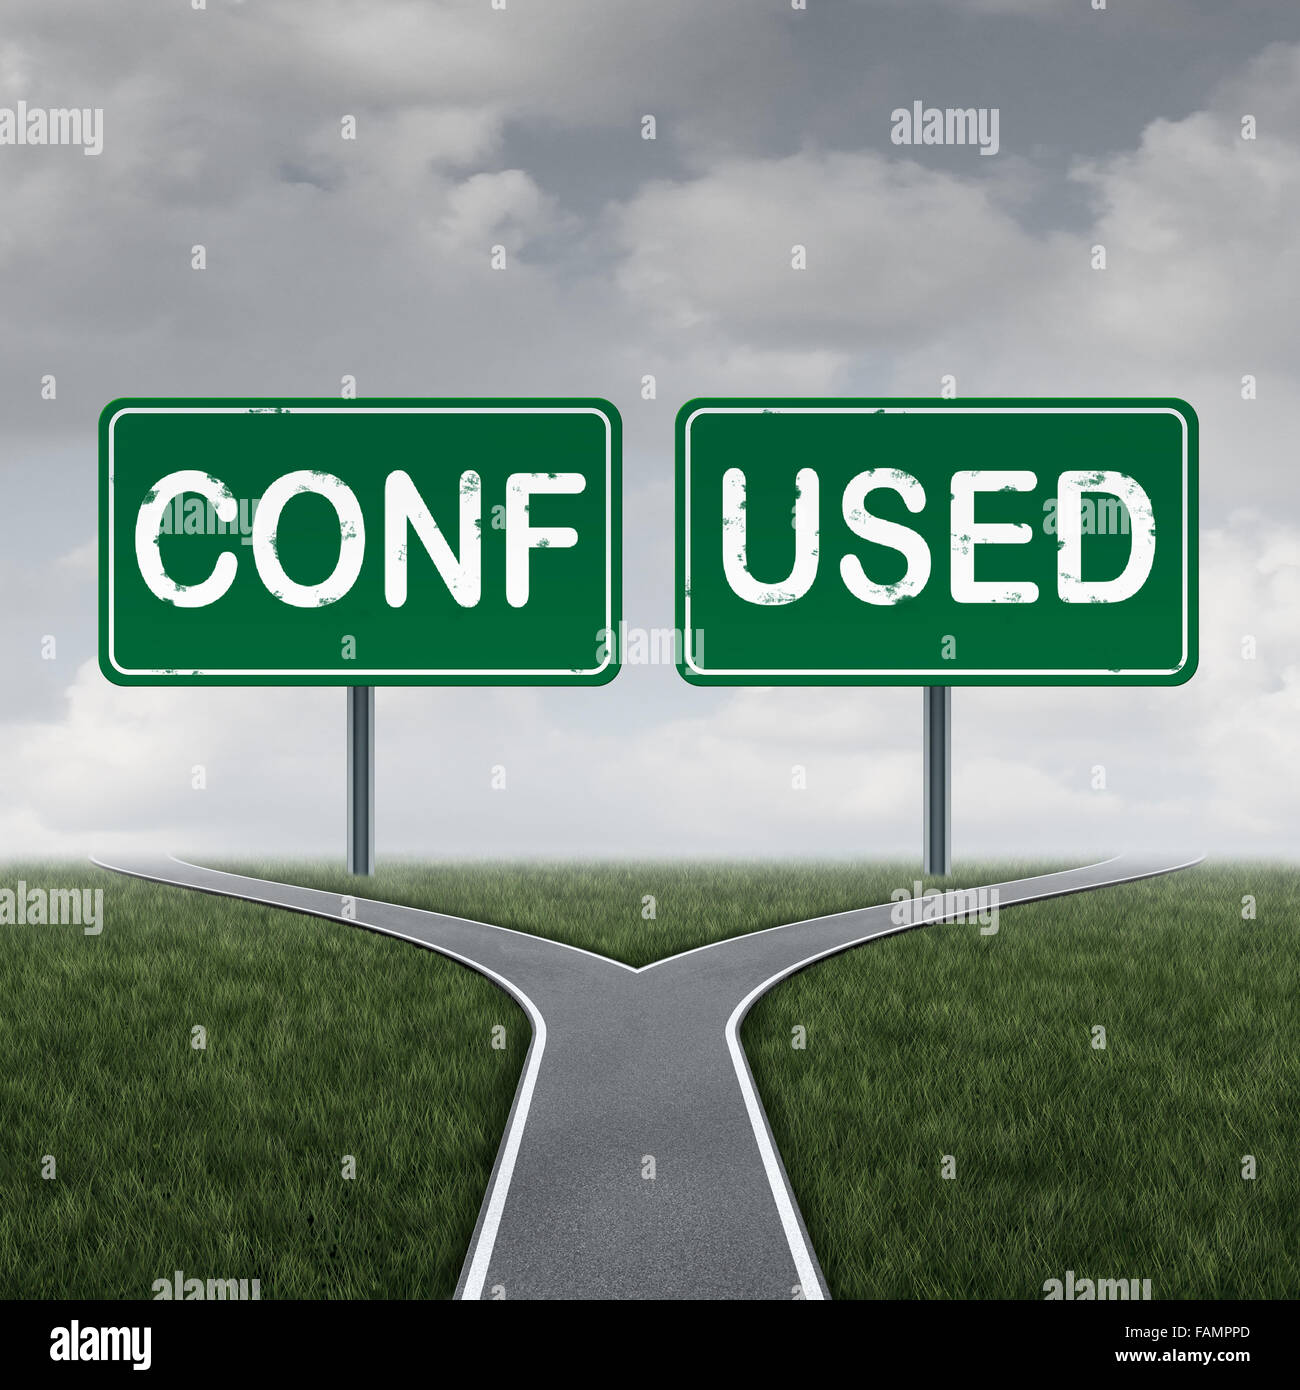 Confused cross road or crossroad choice concept and decision symbol as a metaphor for a dilemma pathway with two - Stock Image